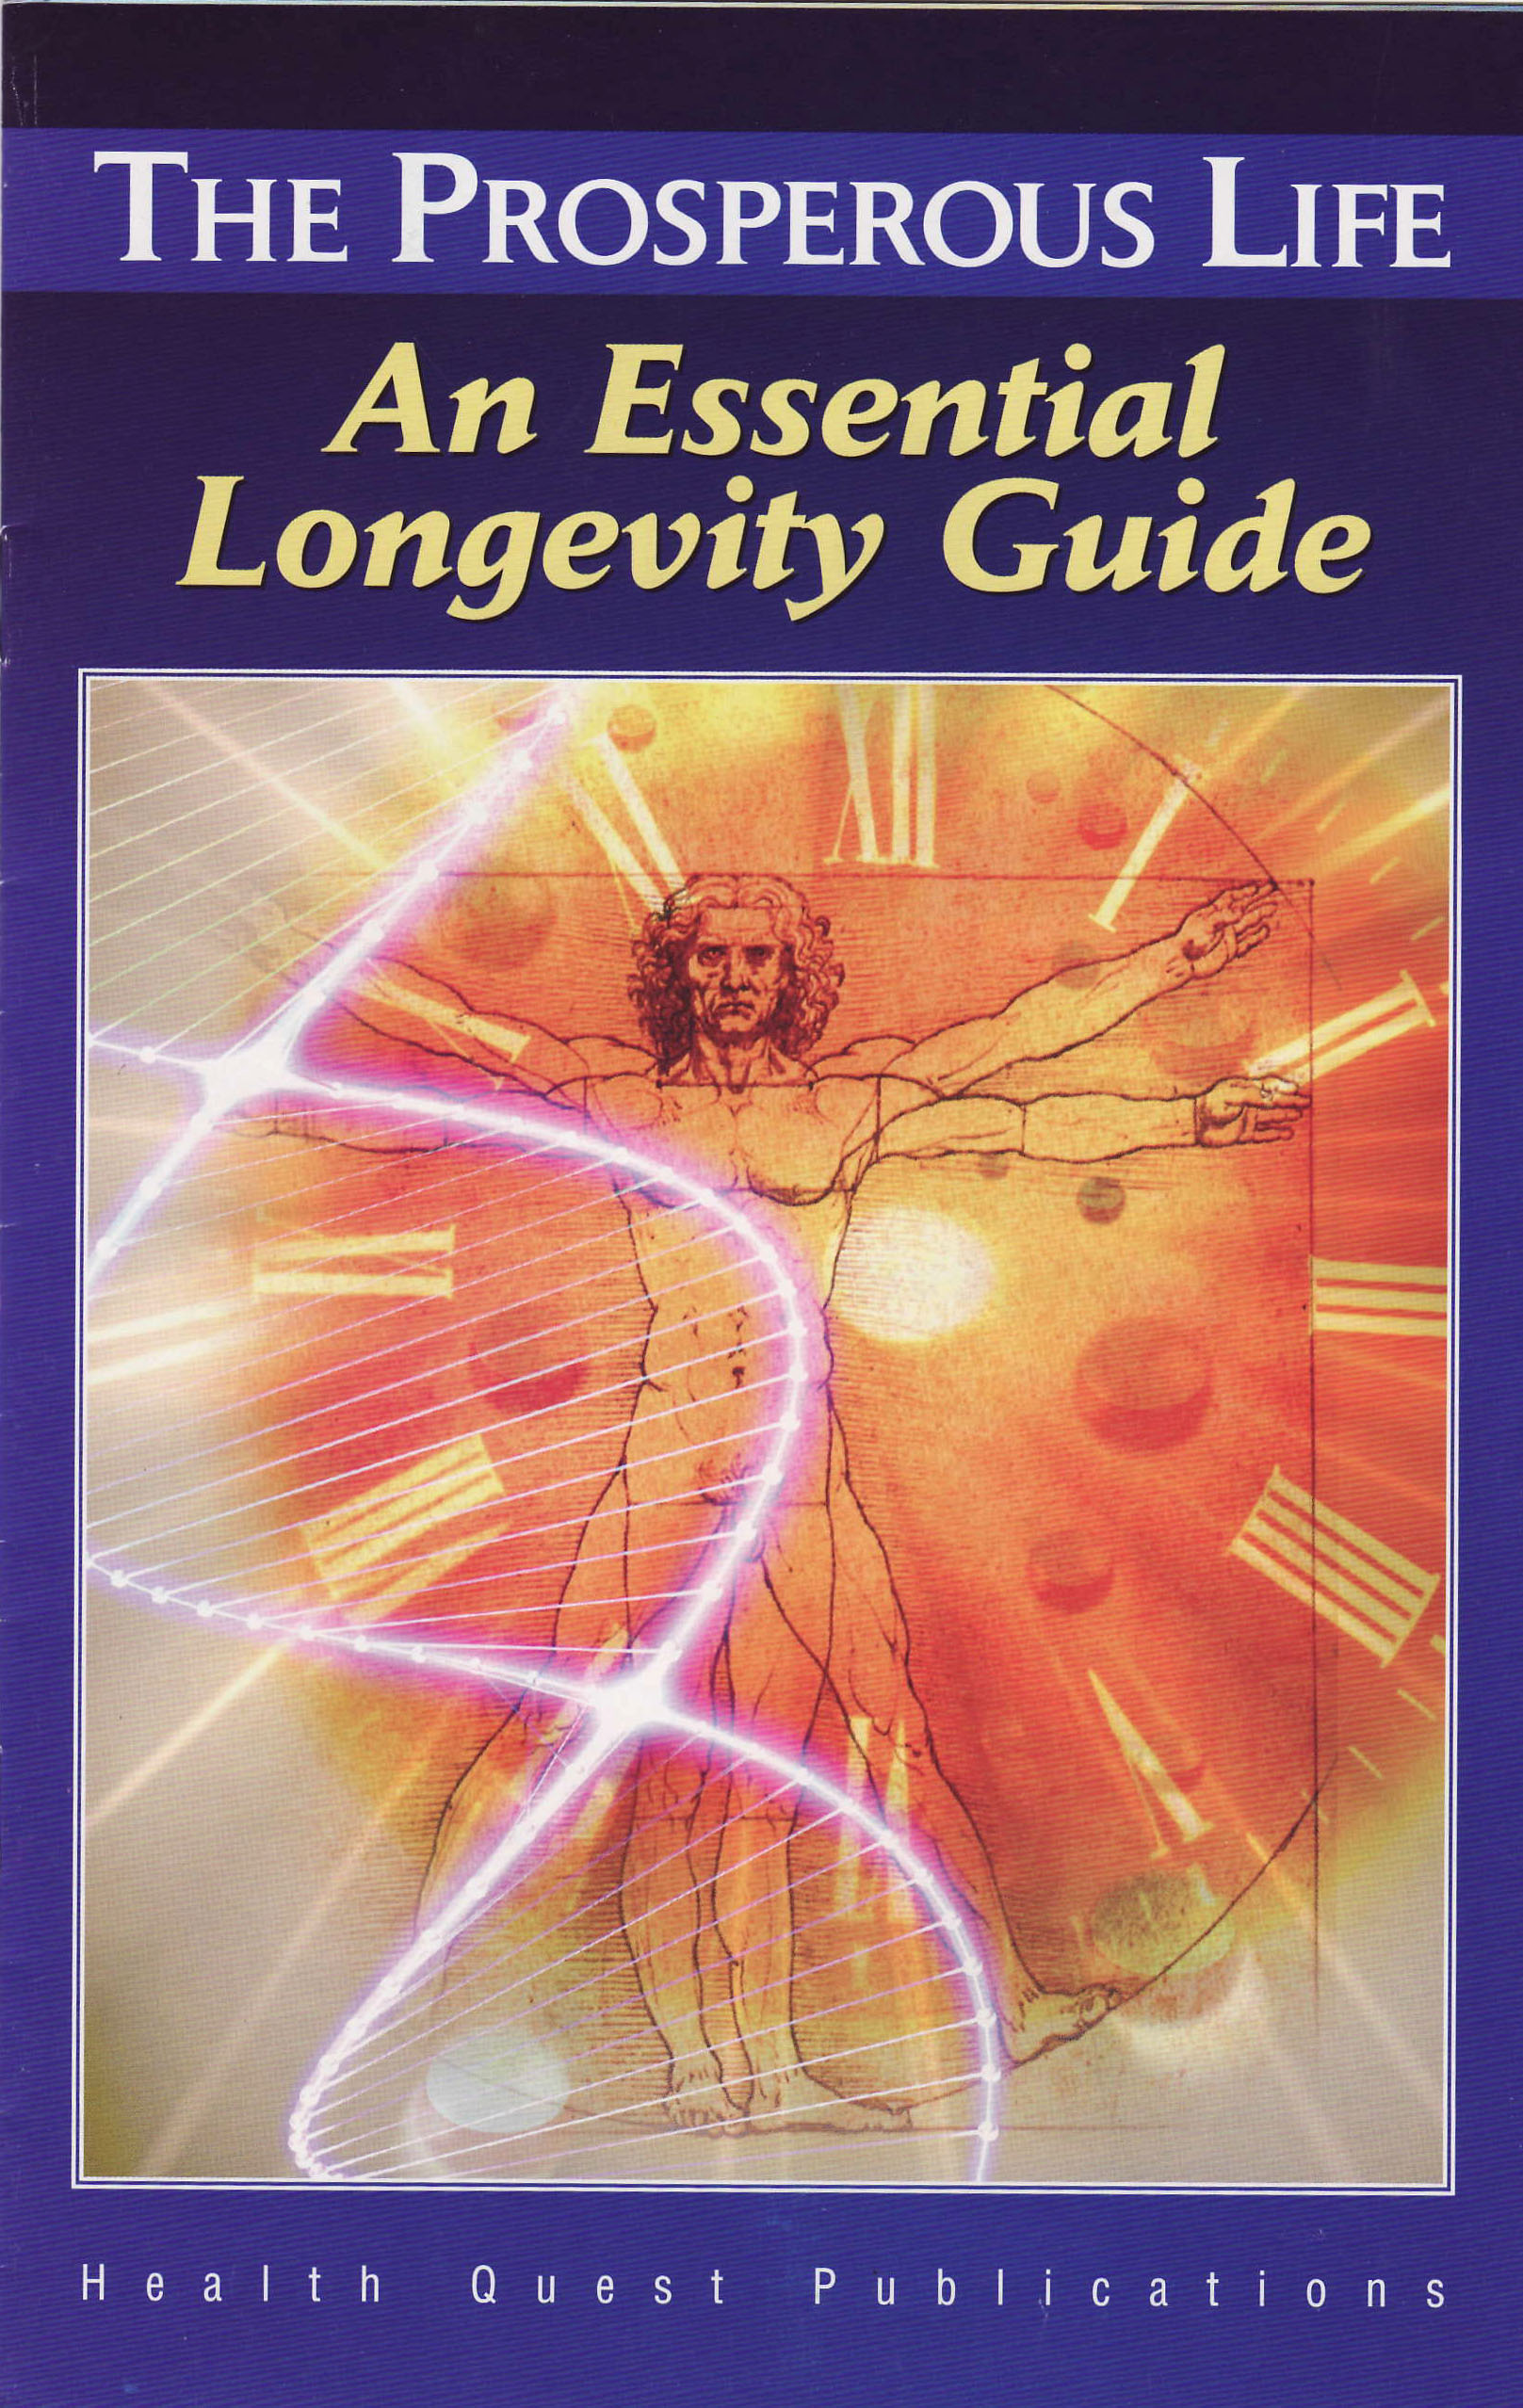 Journal of Longevity Guide